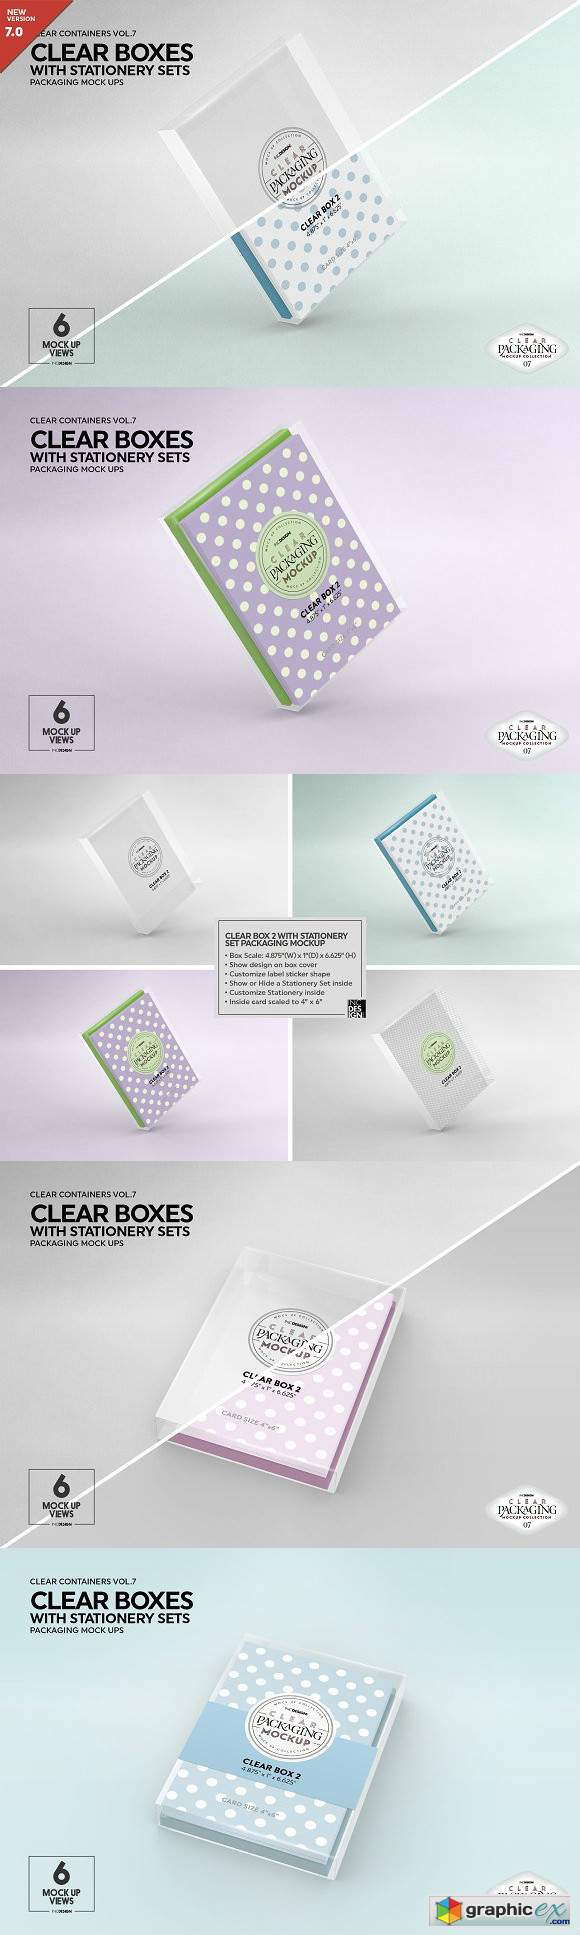 Clear Box Set Packaging Mockup